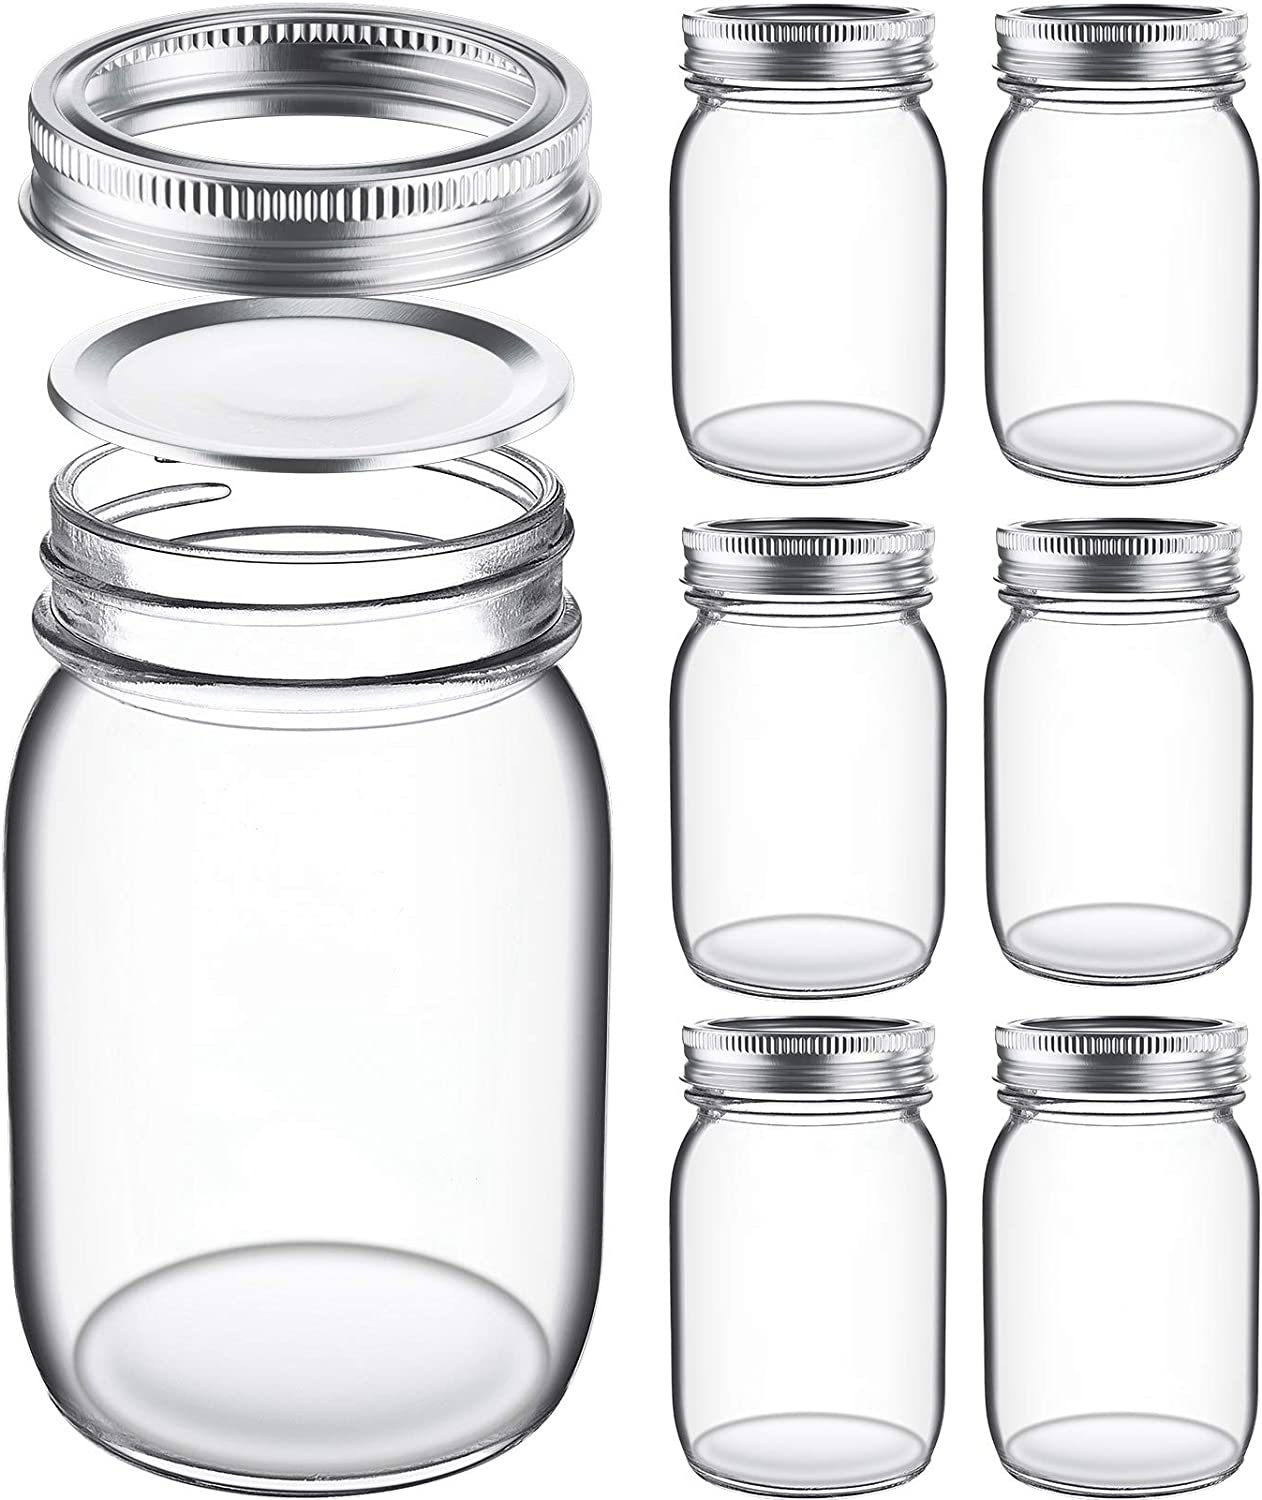 Glass Regular Mouth Mason Jars, 16 Oz Glass Jars with Metal Airtight Lids & Bands for Canning, Food Storage, Prep, Jams, Jellies, Pickles, Preserves, Overnight Oats, Spices, Salad, Drinking (6 Pack)